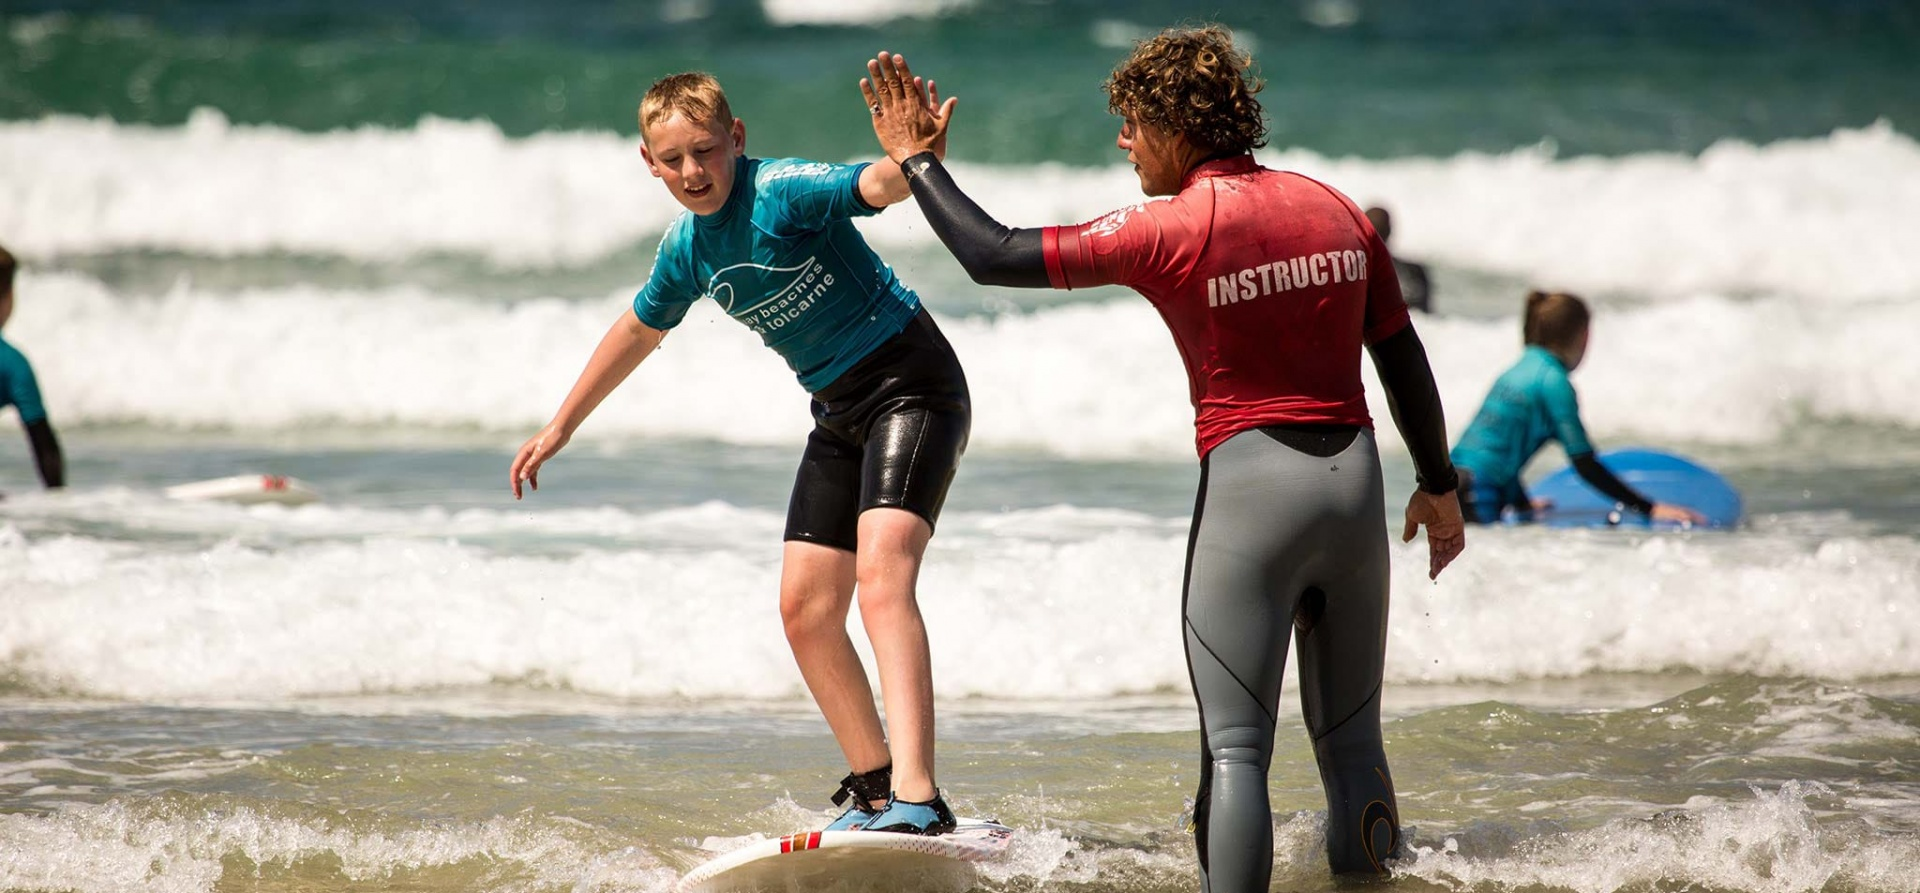 Private Surfing Lesson For 2 - Cornwall